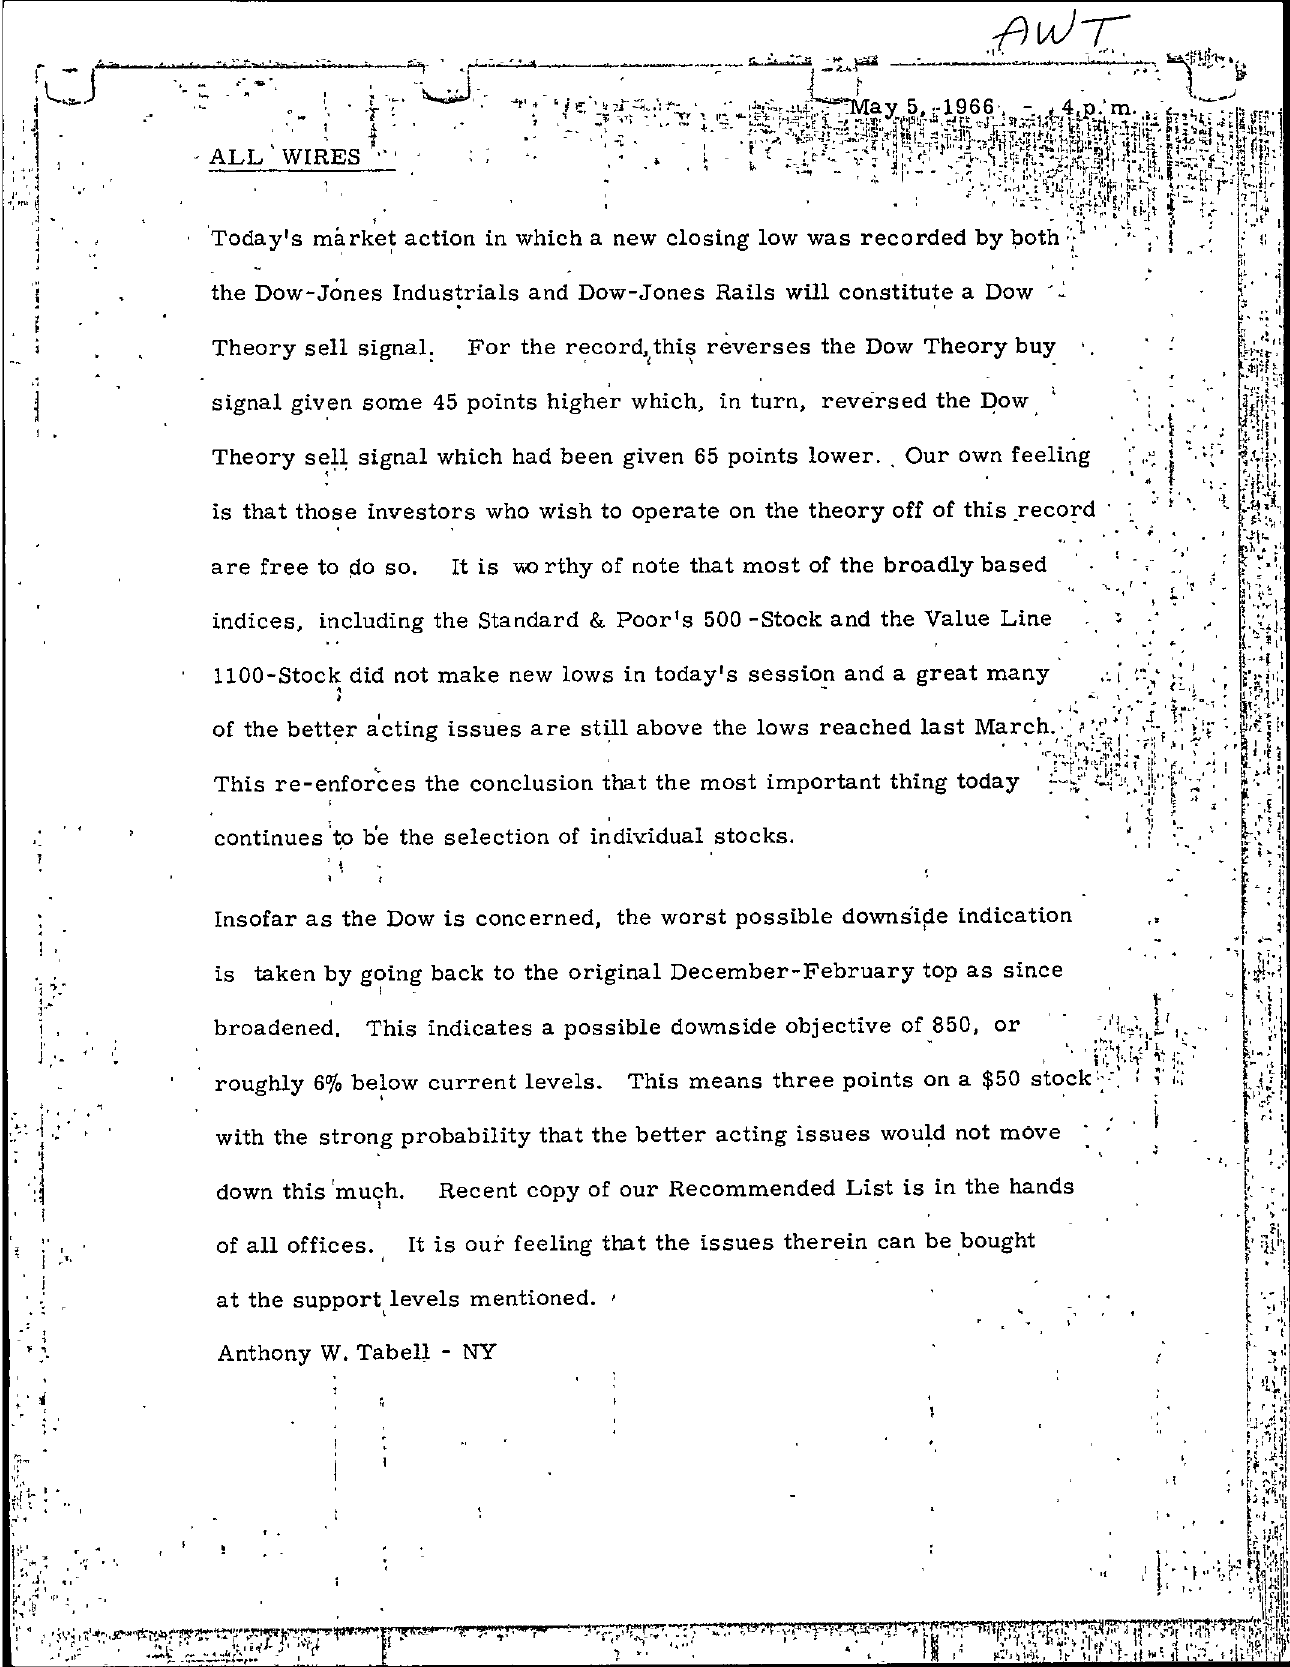 Tabell's Market Letter - May 05, 1966